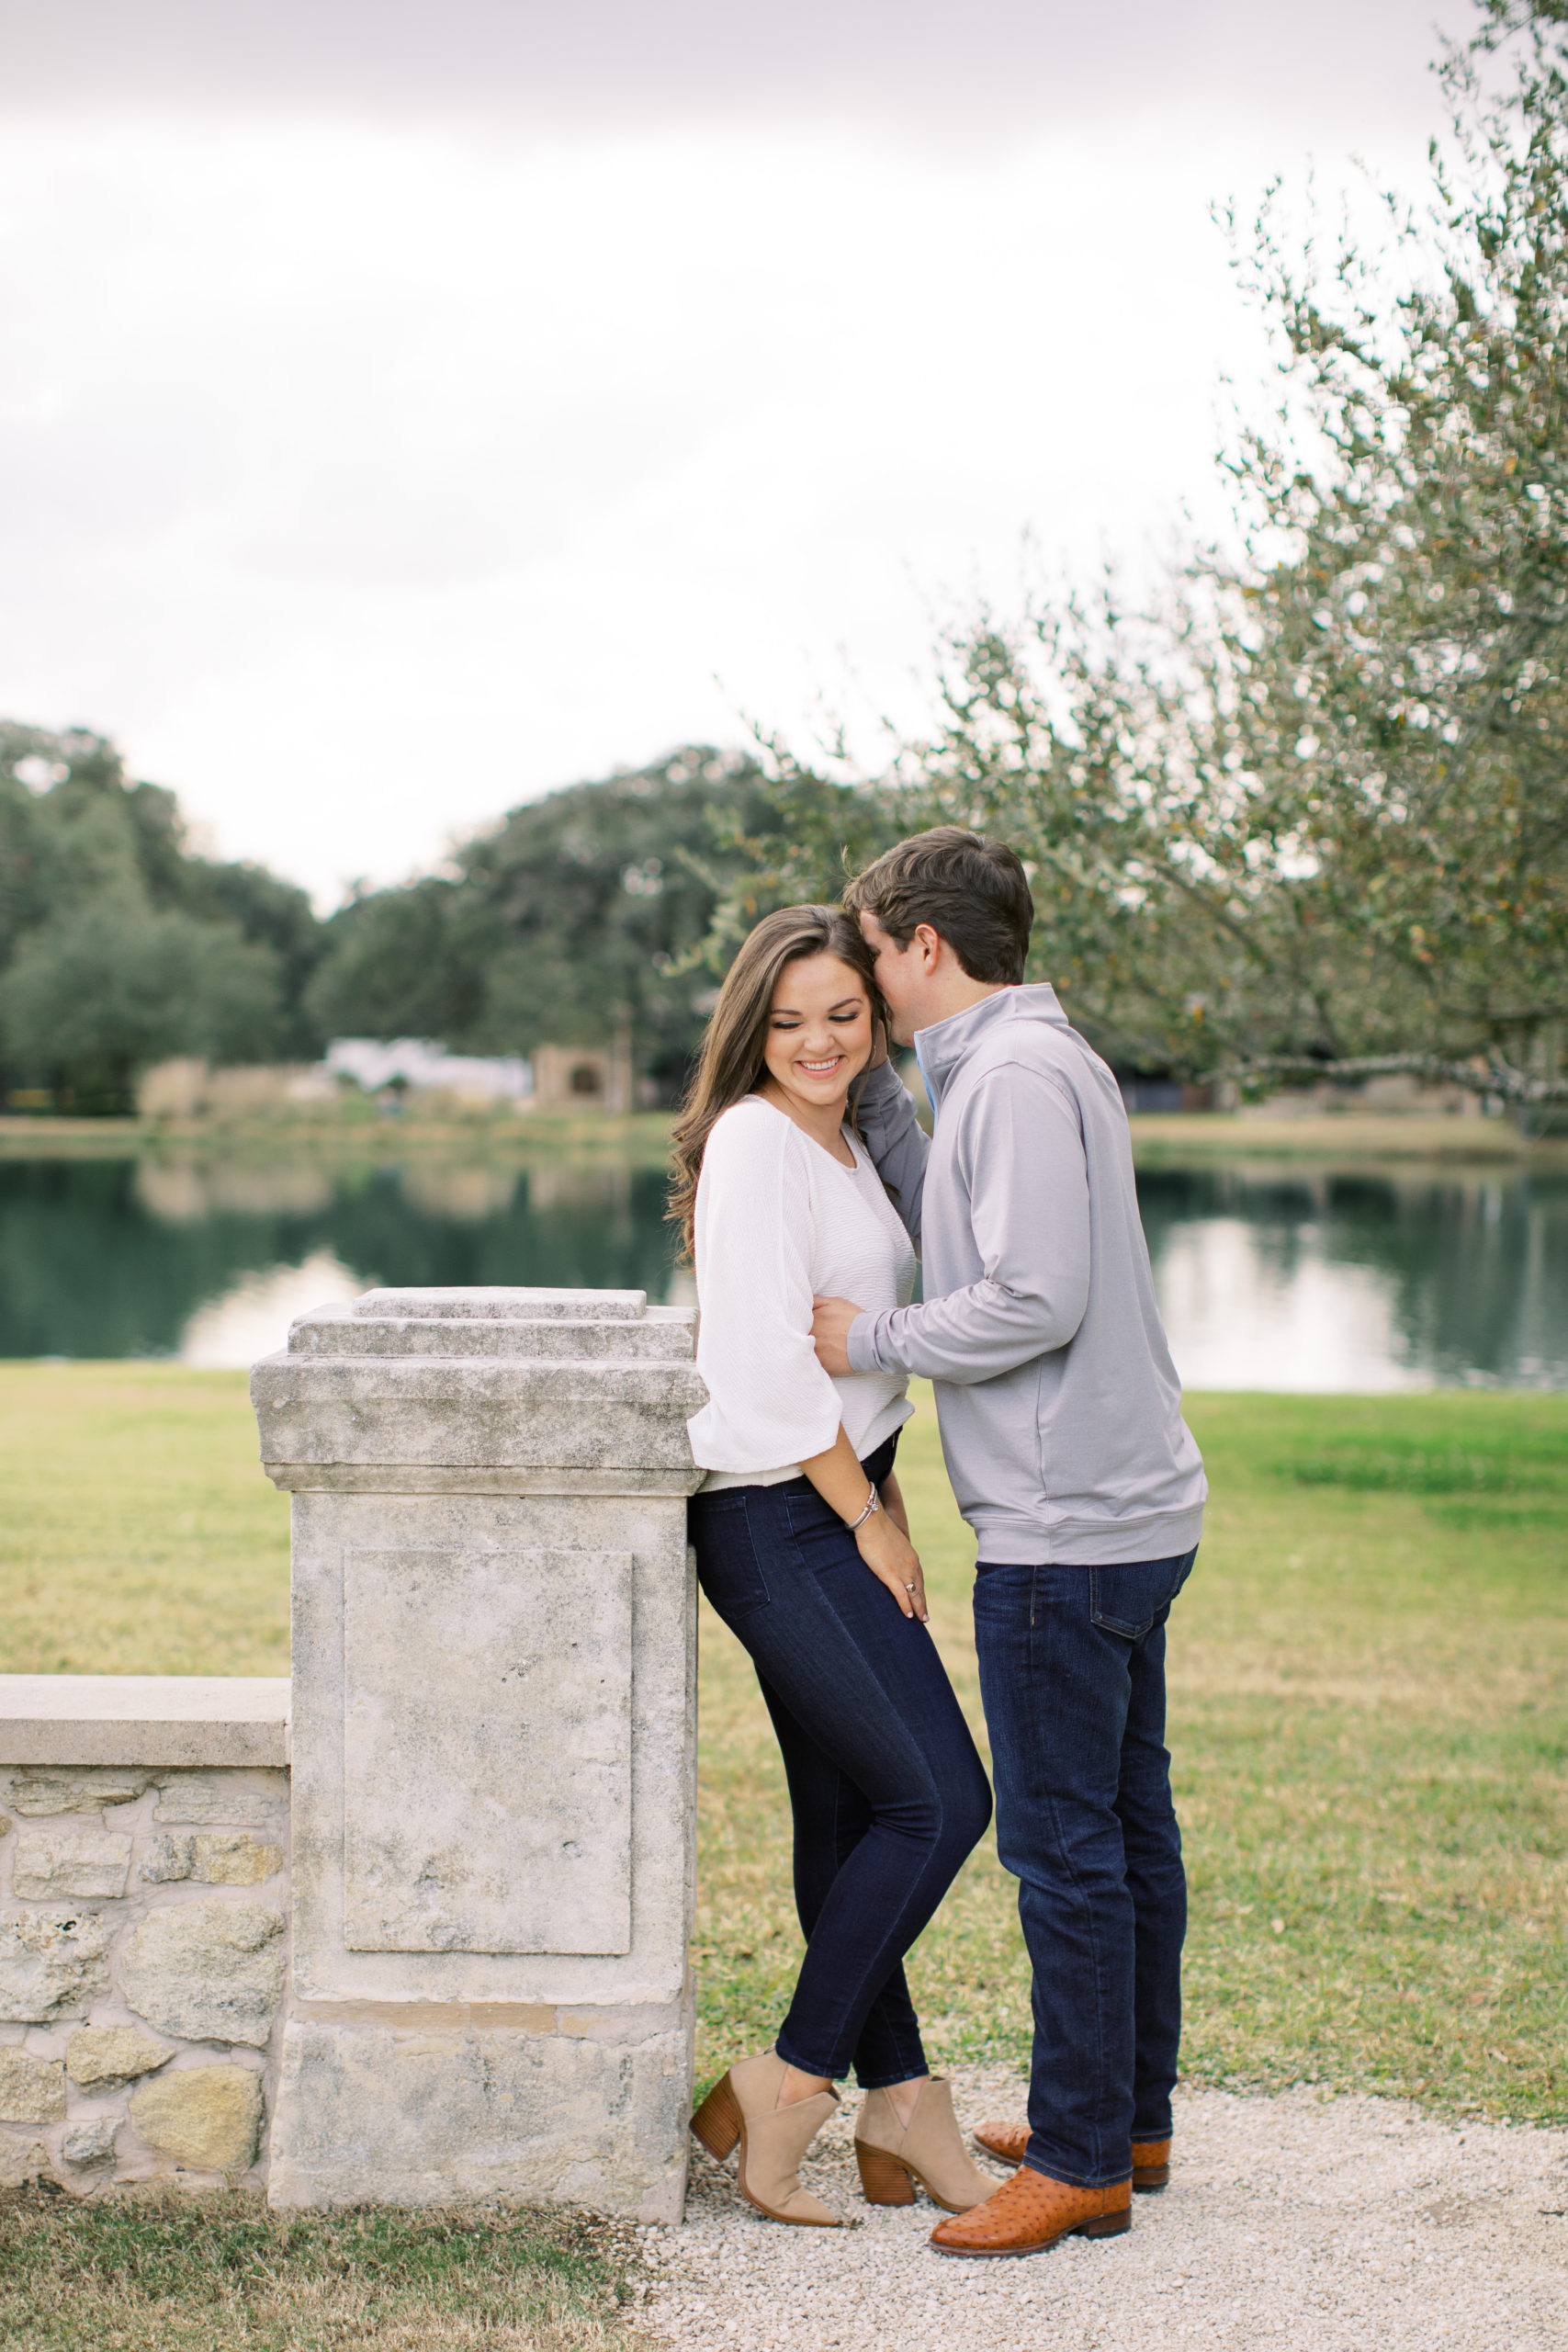 Engagement Session // Clint + Bri